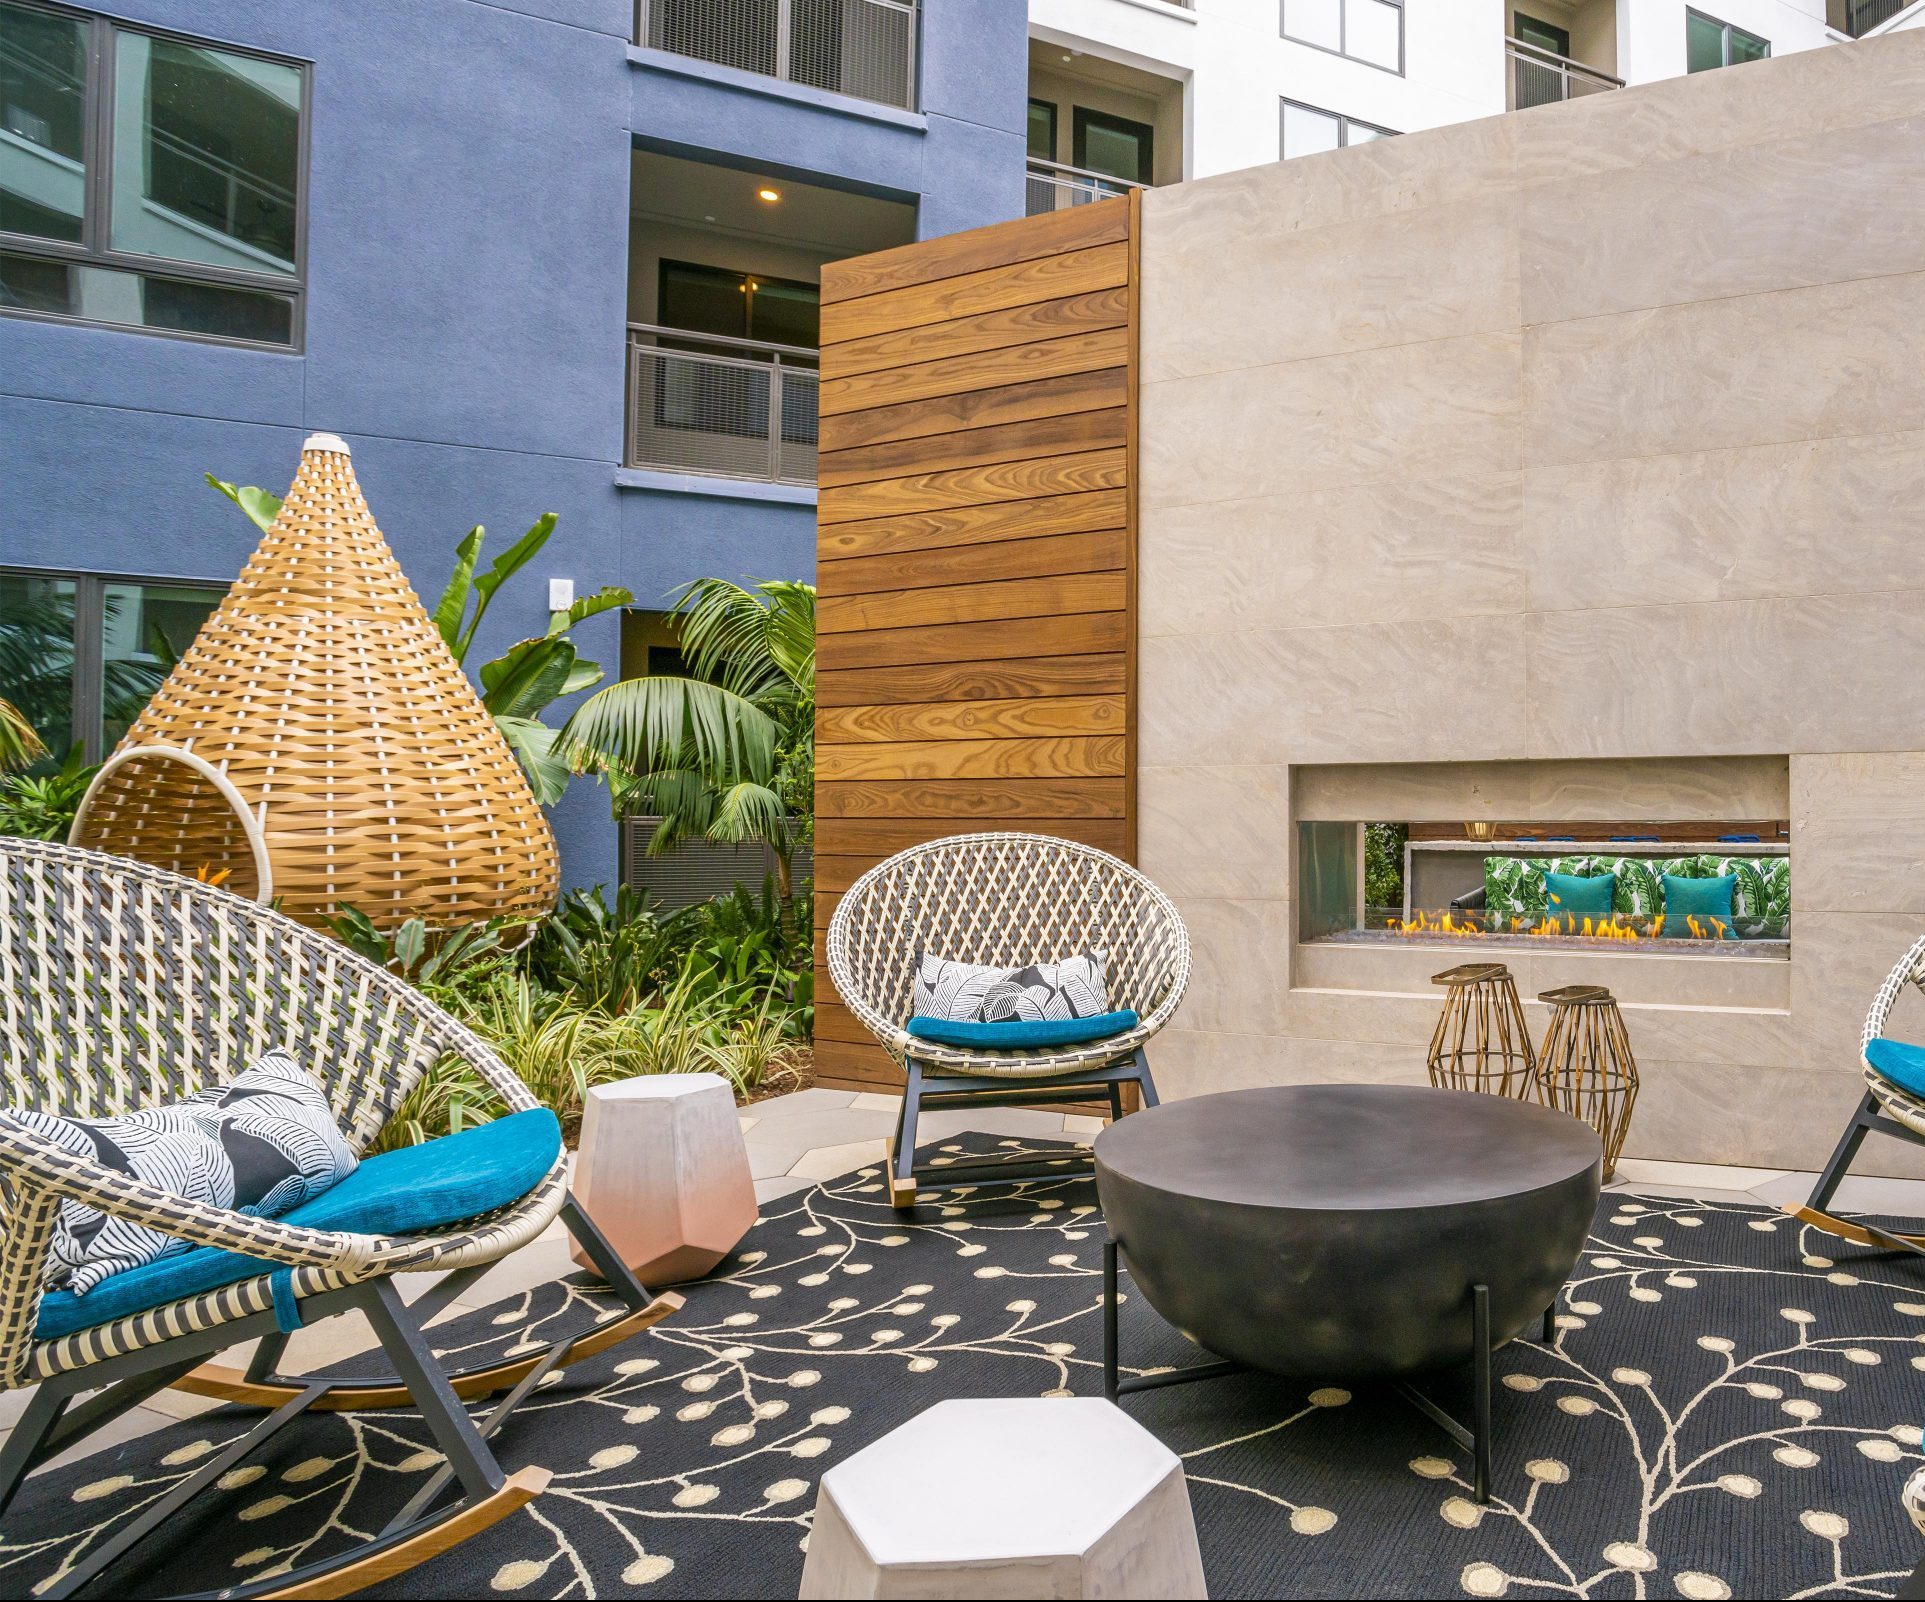 broadstone arden outdoor courtyard lounge and fire pit